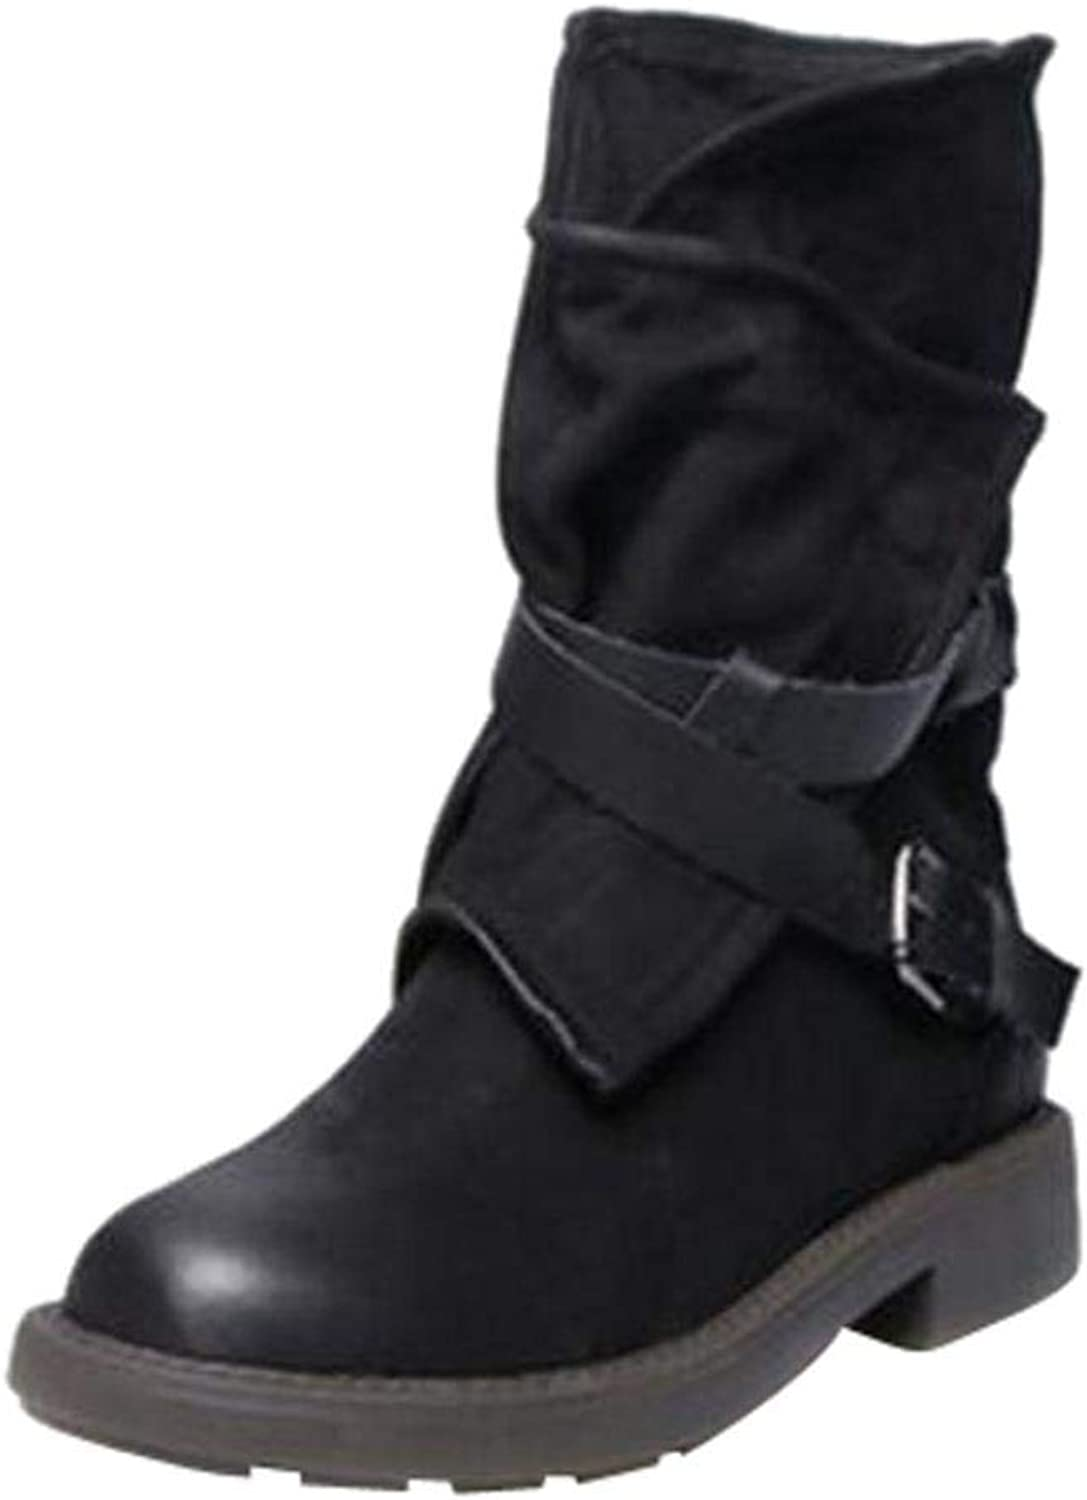 So8ooa Lady Boots Fashion Medium Military Boots Women Buckle Faux Leather Patchwork shoes Leisure Elegant Cosy Wild Tight Super Quality for Womens